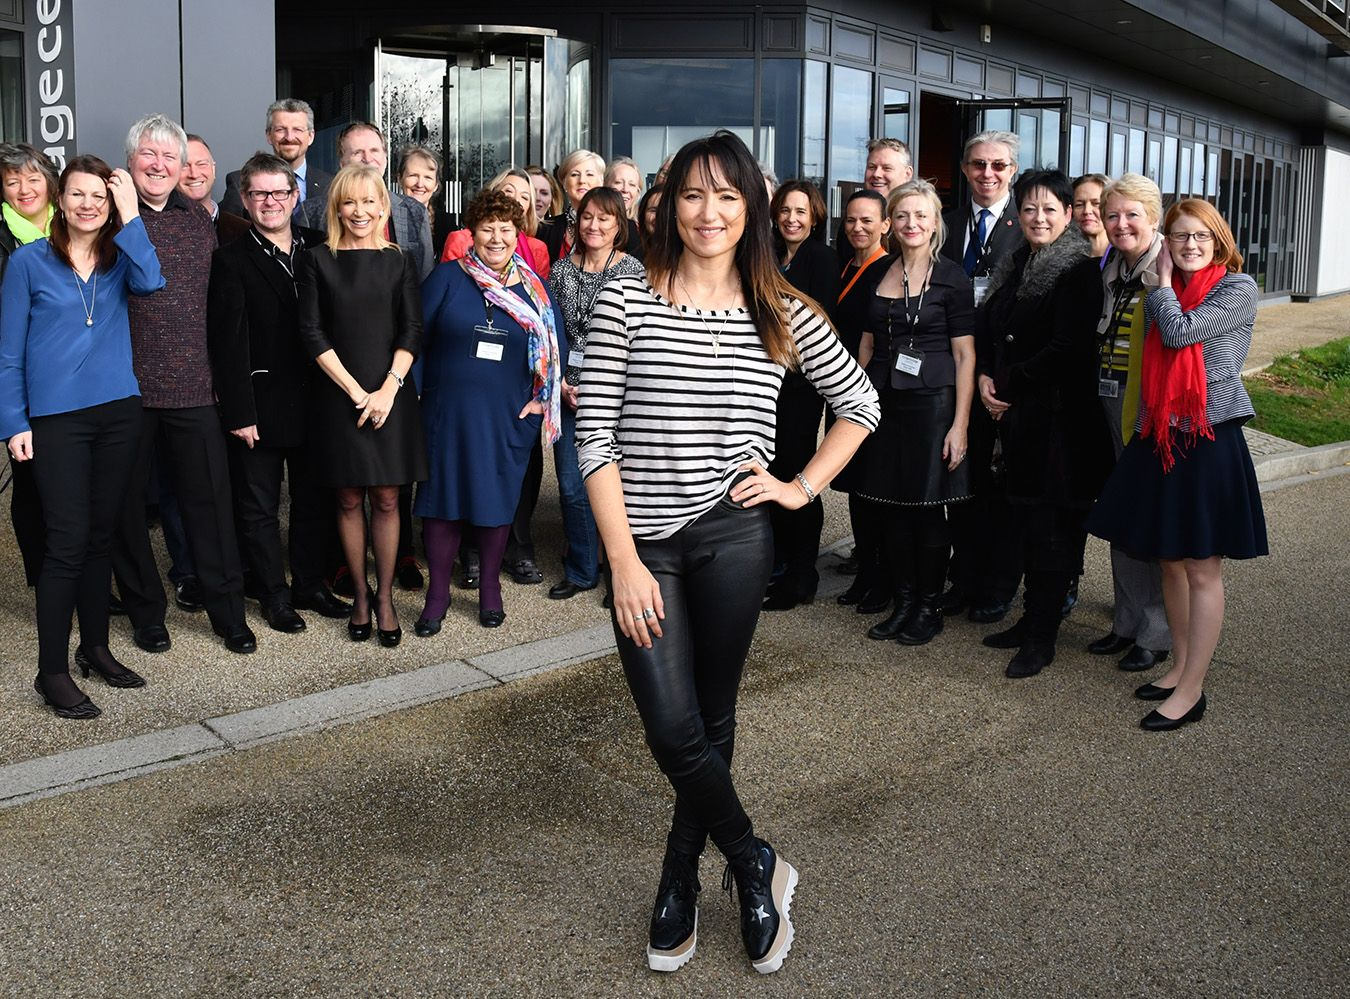 KT Tunstall poses with members of the Friends of Jo Cox choir outside the recording studio